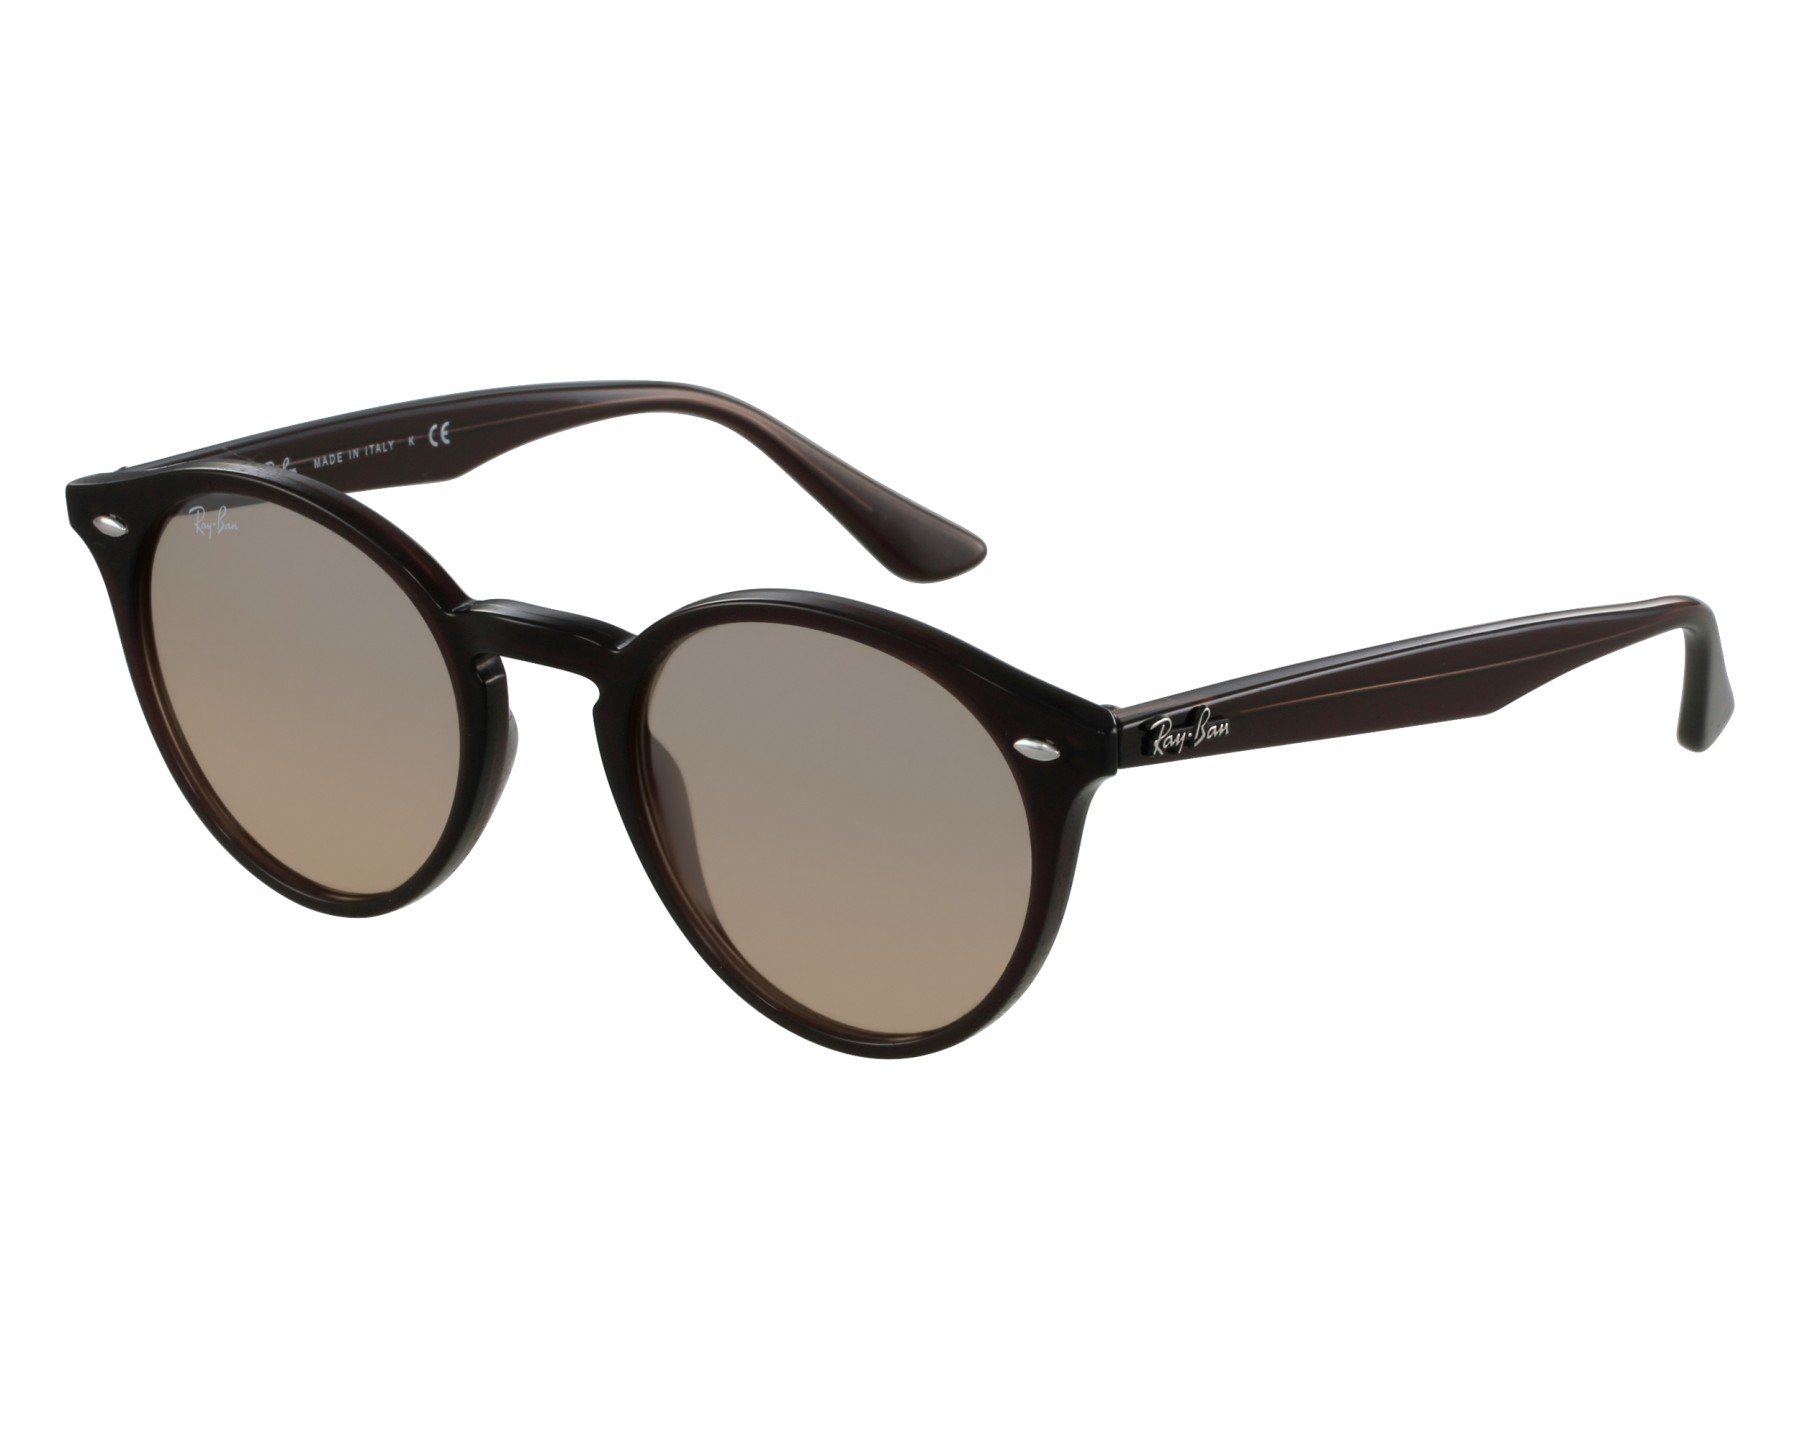 c6366df0c3b4 Sunglasses Ray-Ban RB-2180 6231 3D 49-21 Brown front view